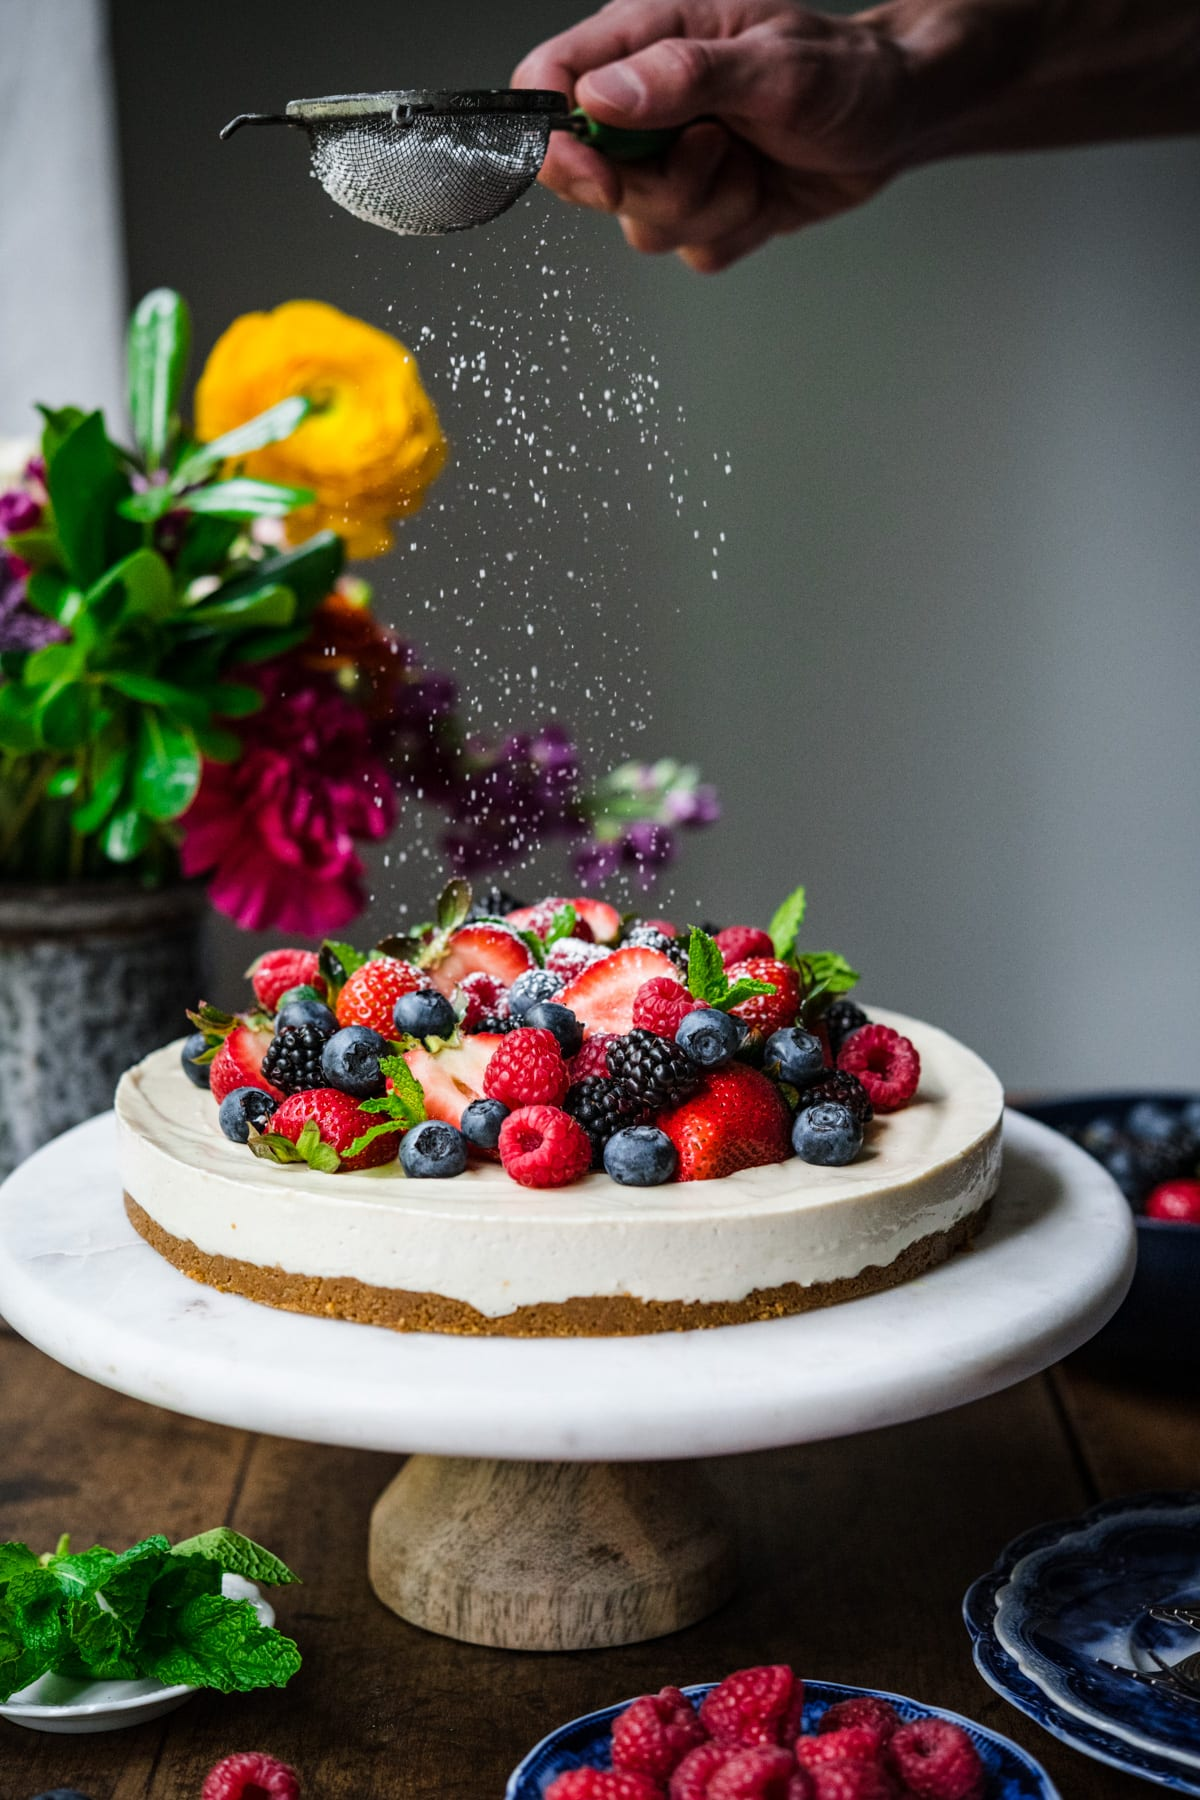 dusting powdered sugar onto no bake vegan cheesecake topped with fresh berries on a marble cake stand.